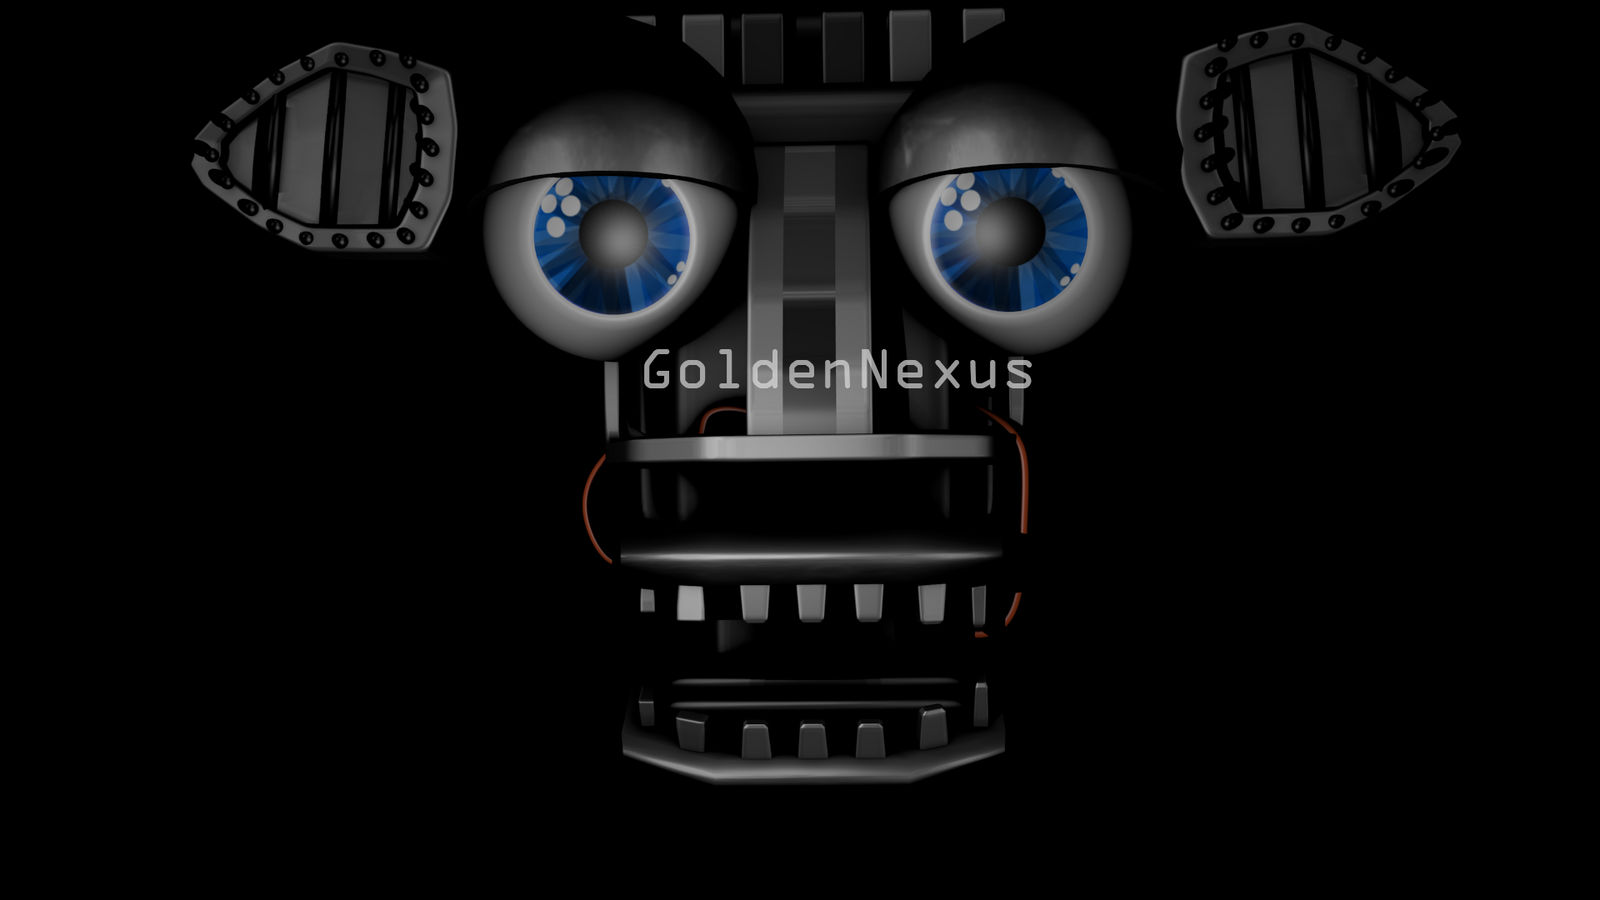 Fnaf 2 Endoskeleton Model Wip By Goldennexus On Deviantart